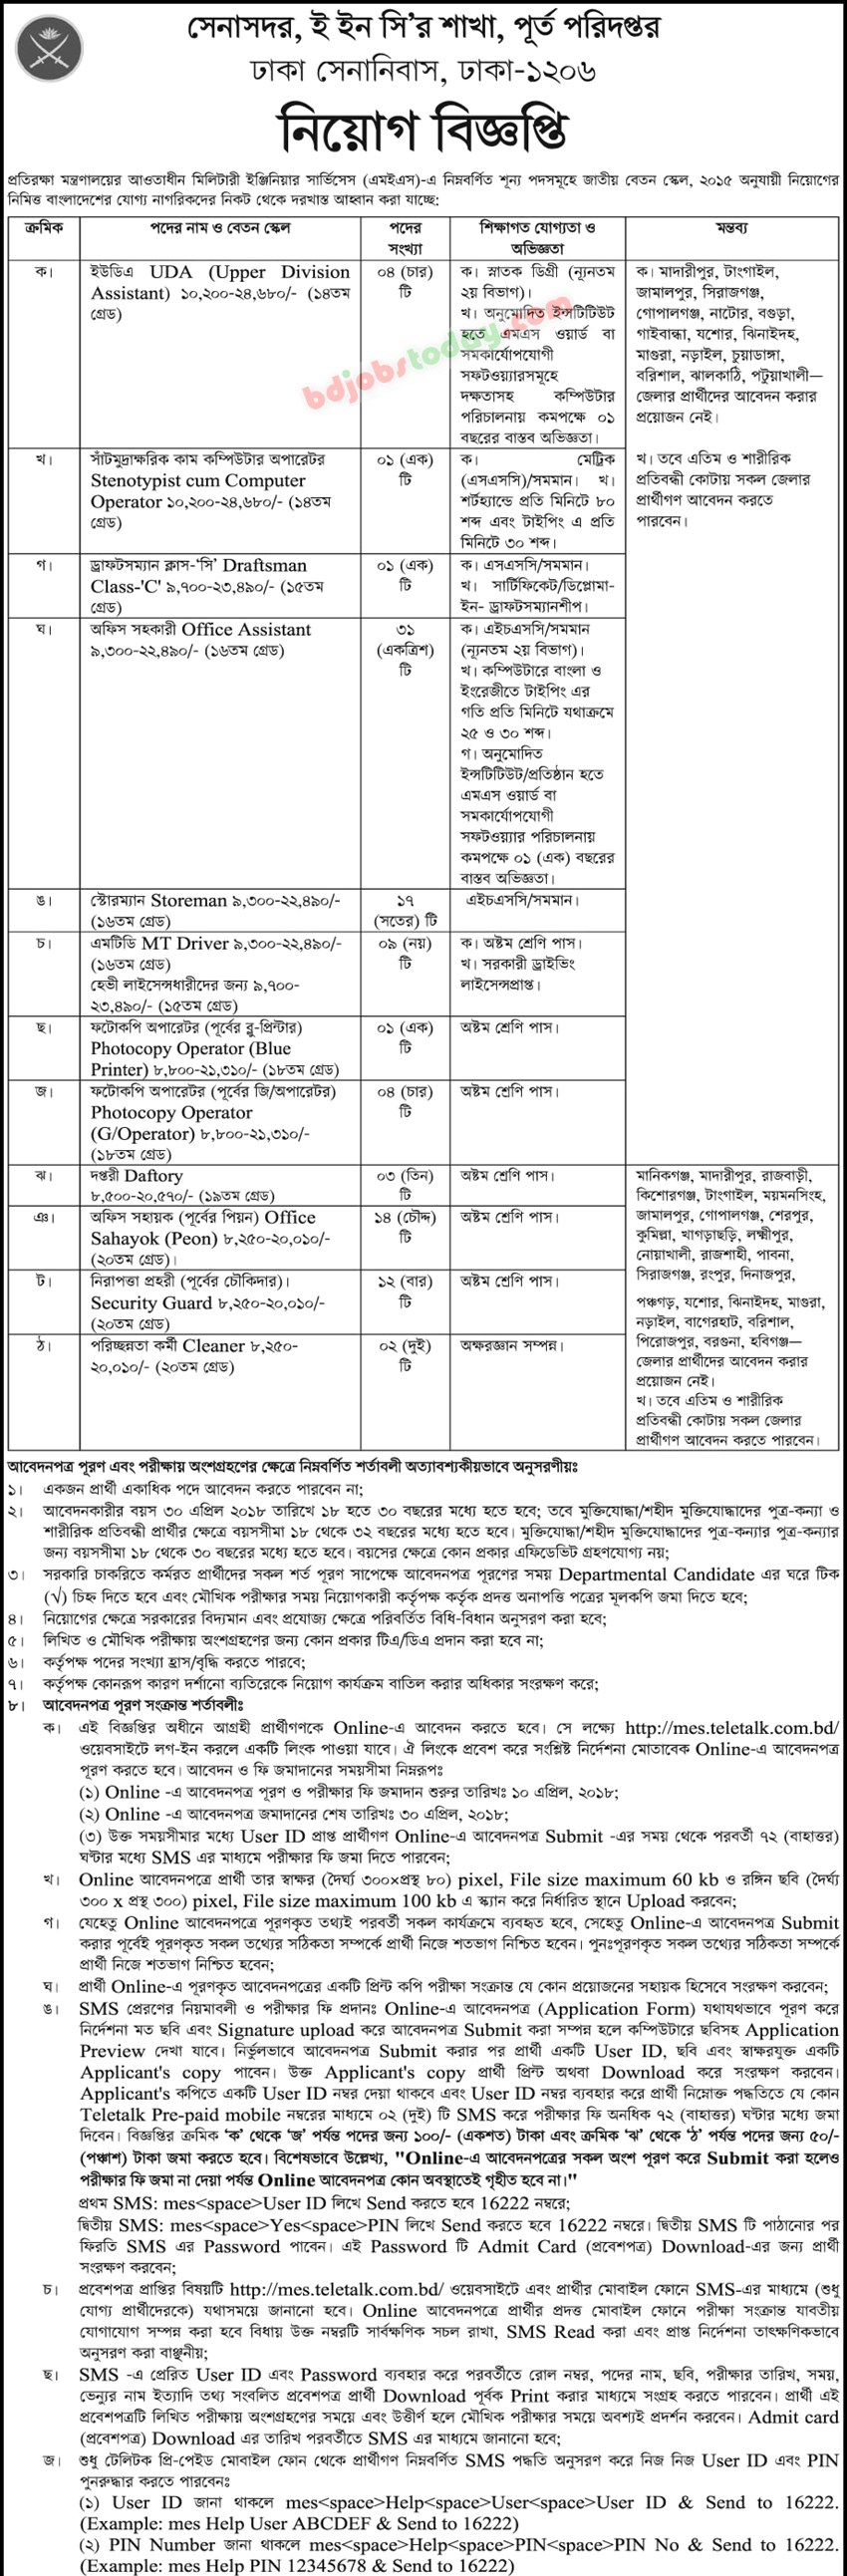 Military Engineer Services (MES) jobs